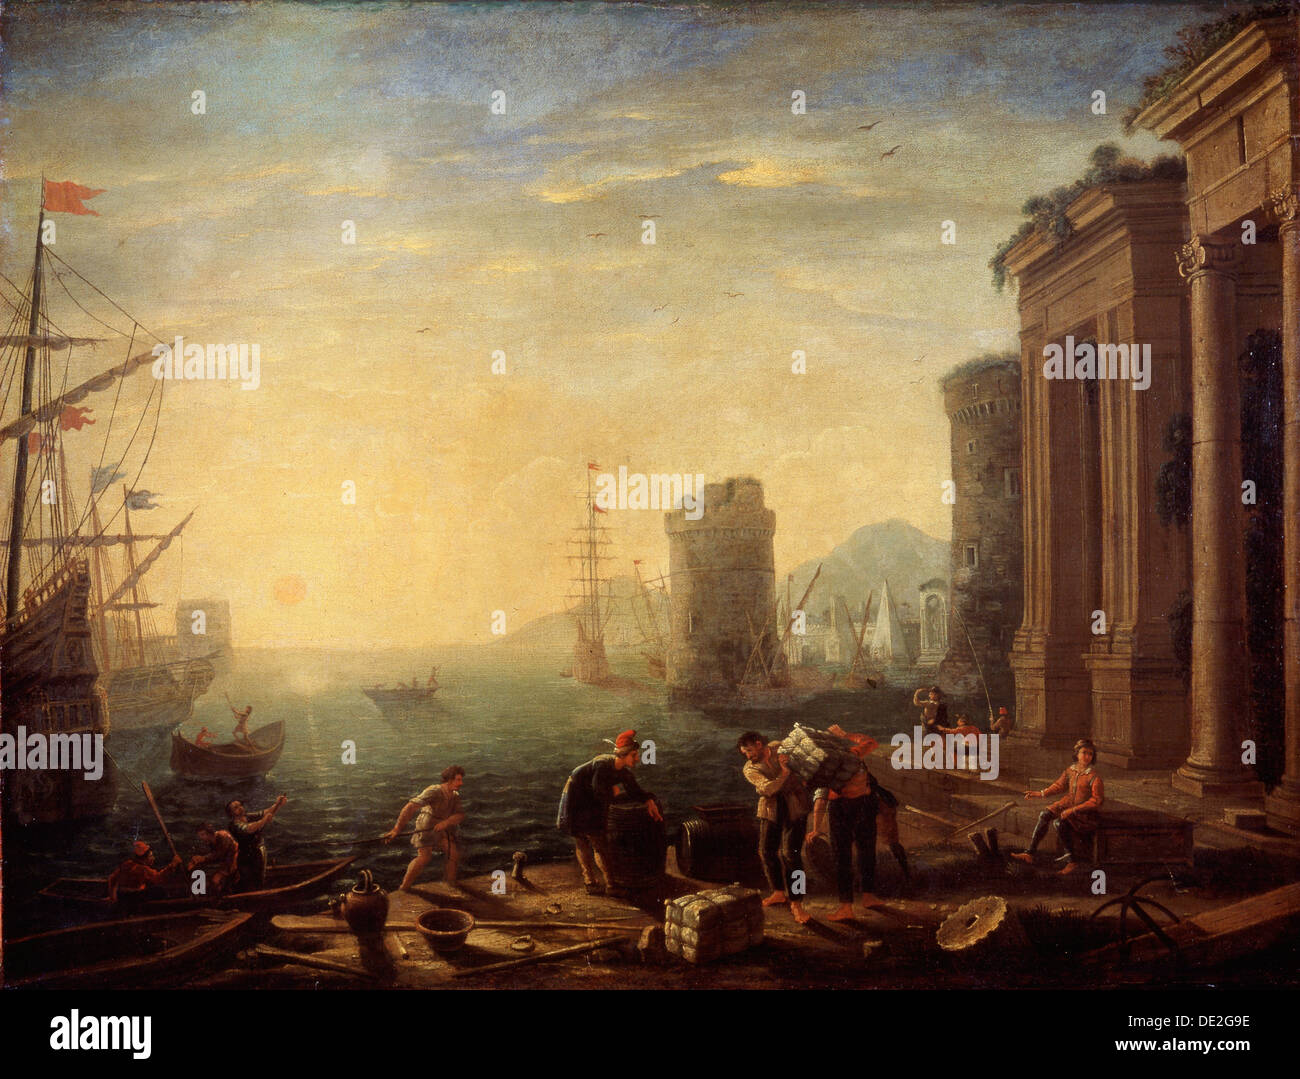 'Morning in the Harbour', 1630s. Artist: Claude Lorrain - Stock Image